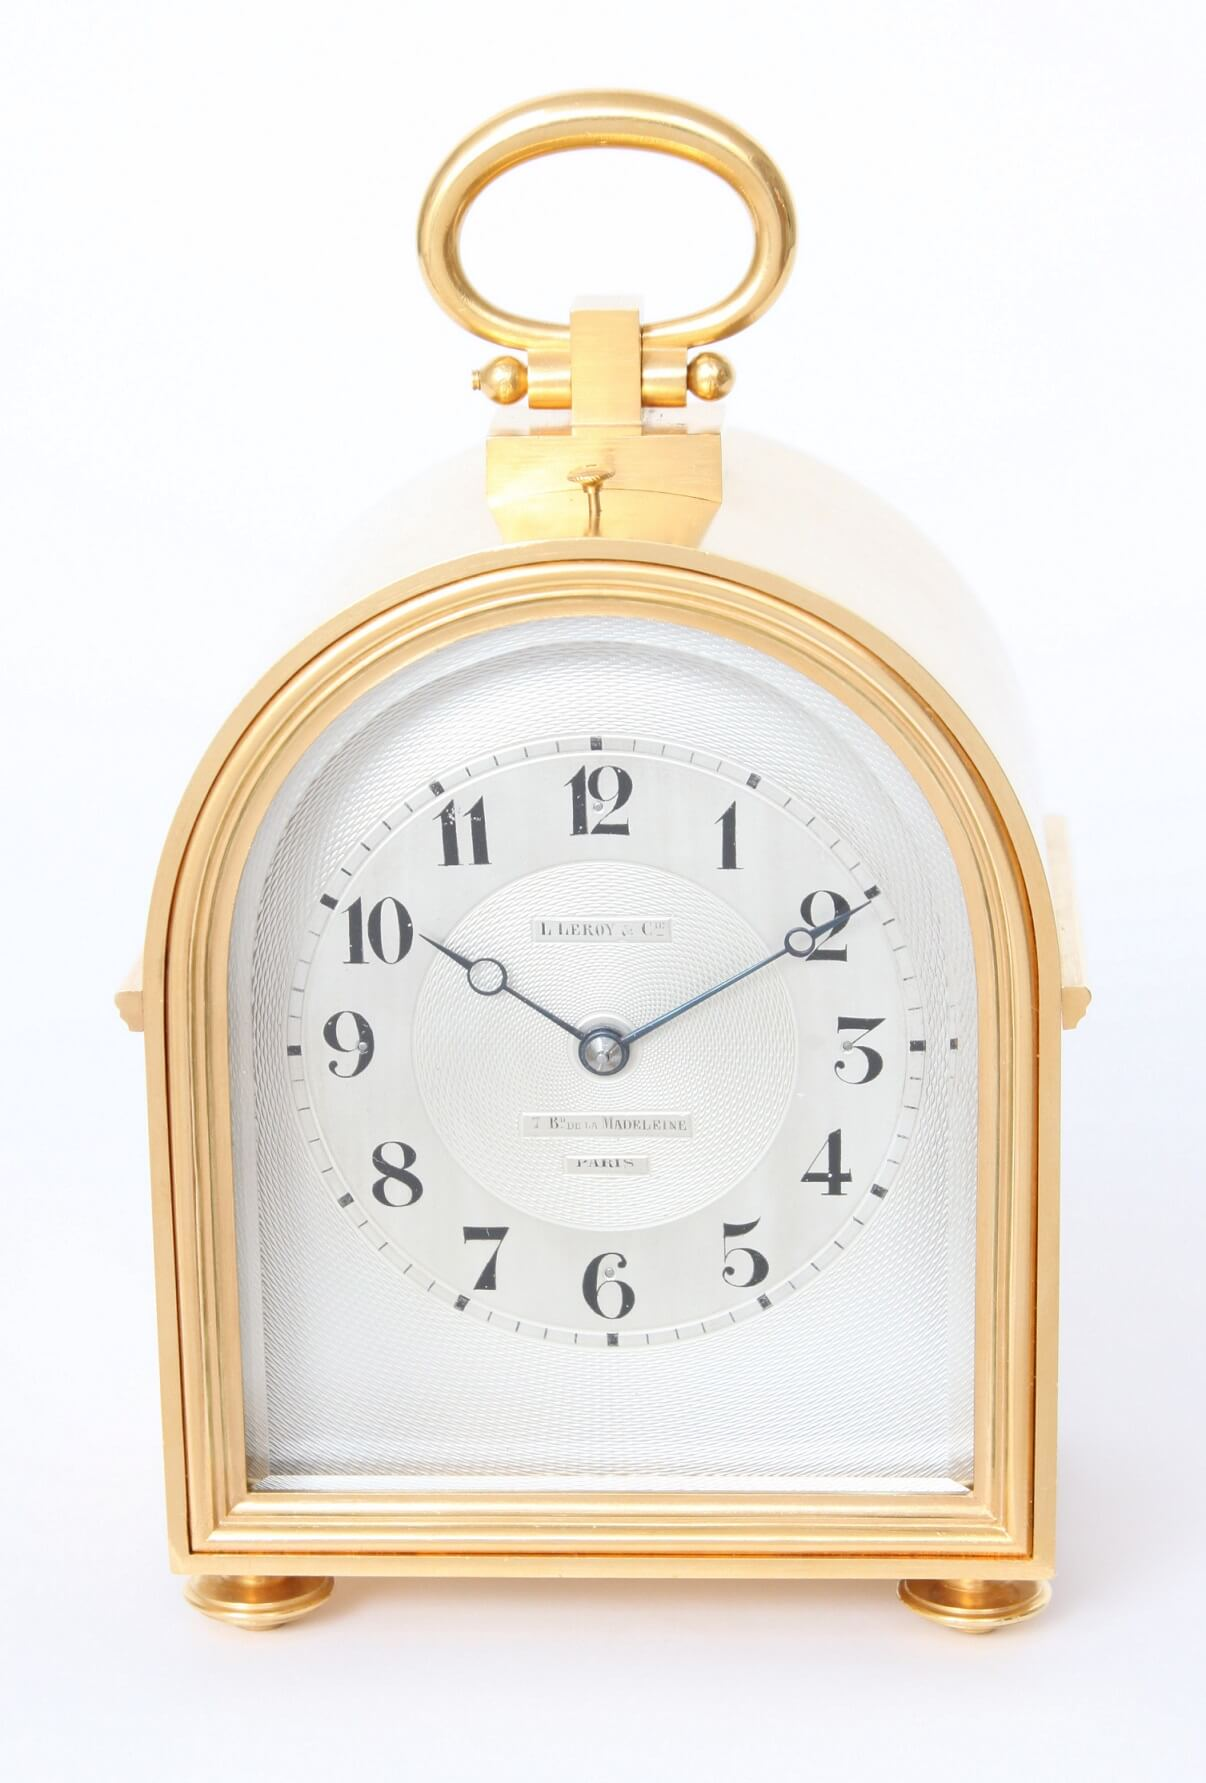 French-humpback-antique-travel-carriage-clock-gilt-brass-Leroy & Cie-petite-sonnerie